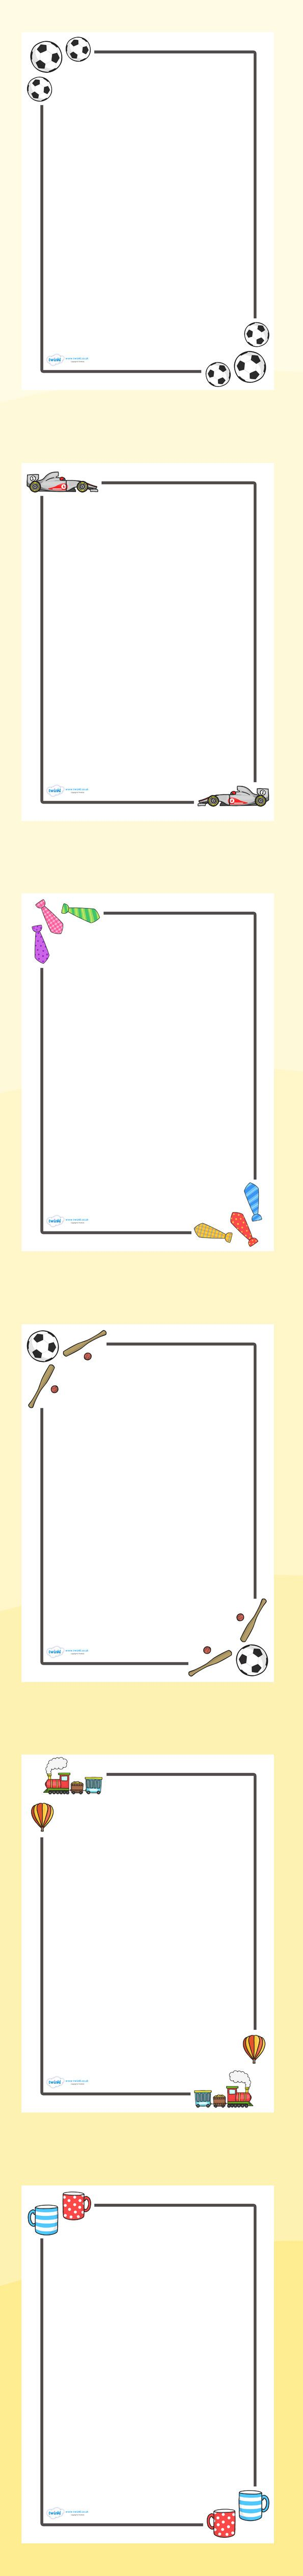 Father's Day Page Borders - Pop over to our site at www.twinkl.co.uk and check out our lovely Father's Day primary teaching resources!